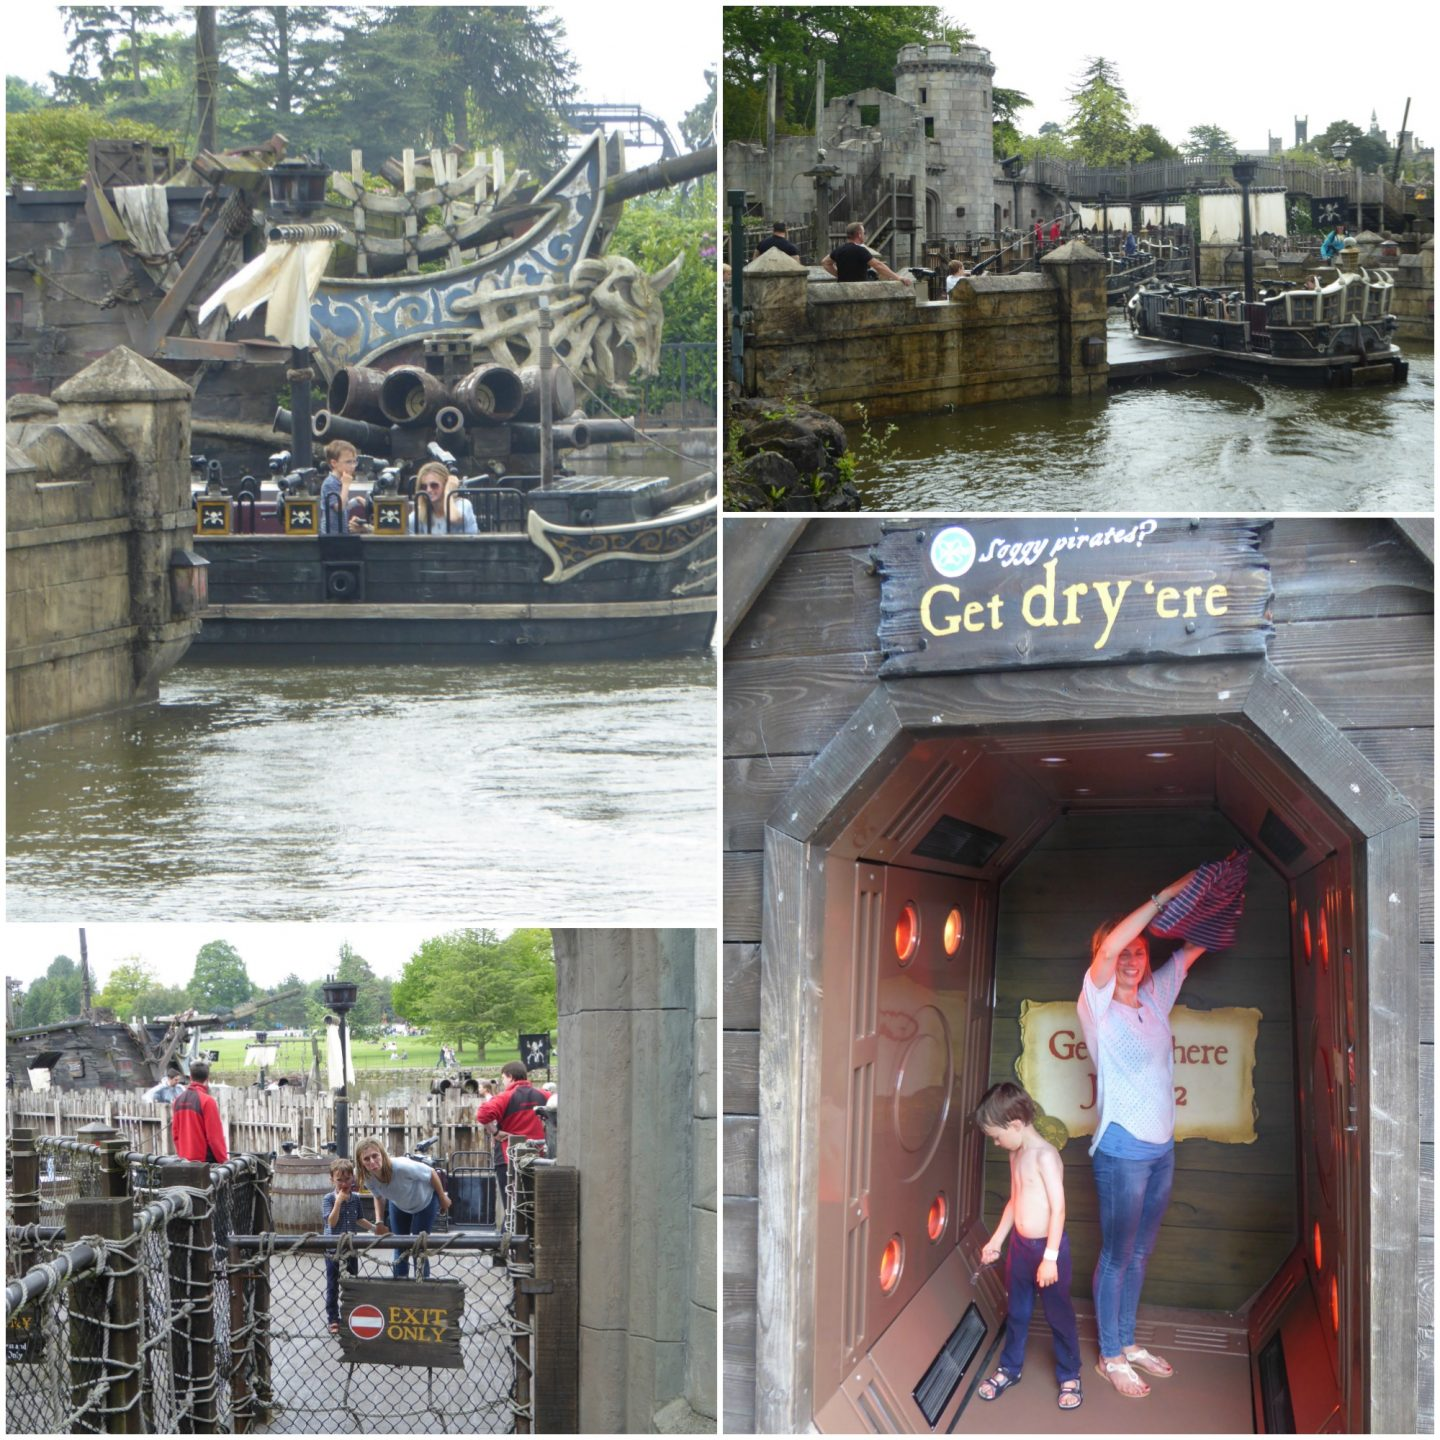 Review Alton Towers theme park and water park - Galleon ride